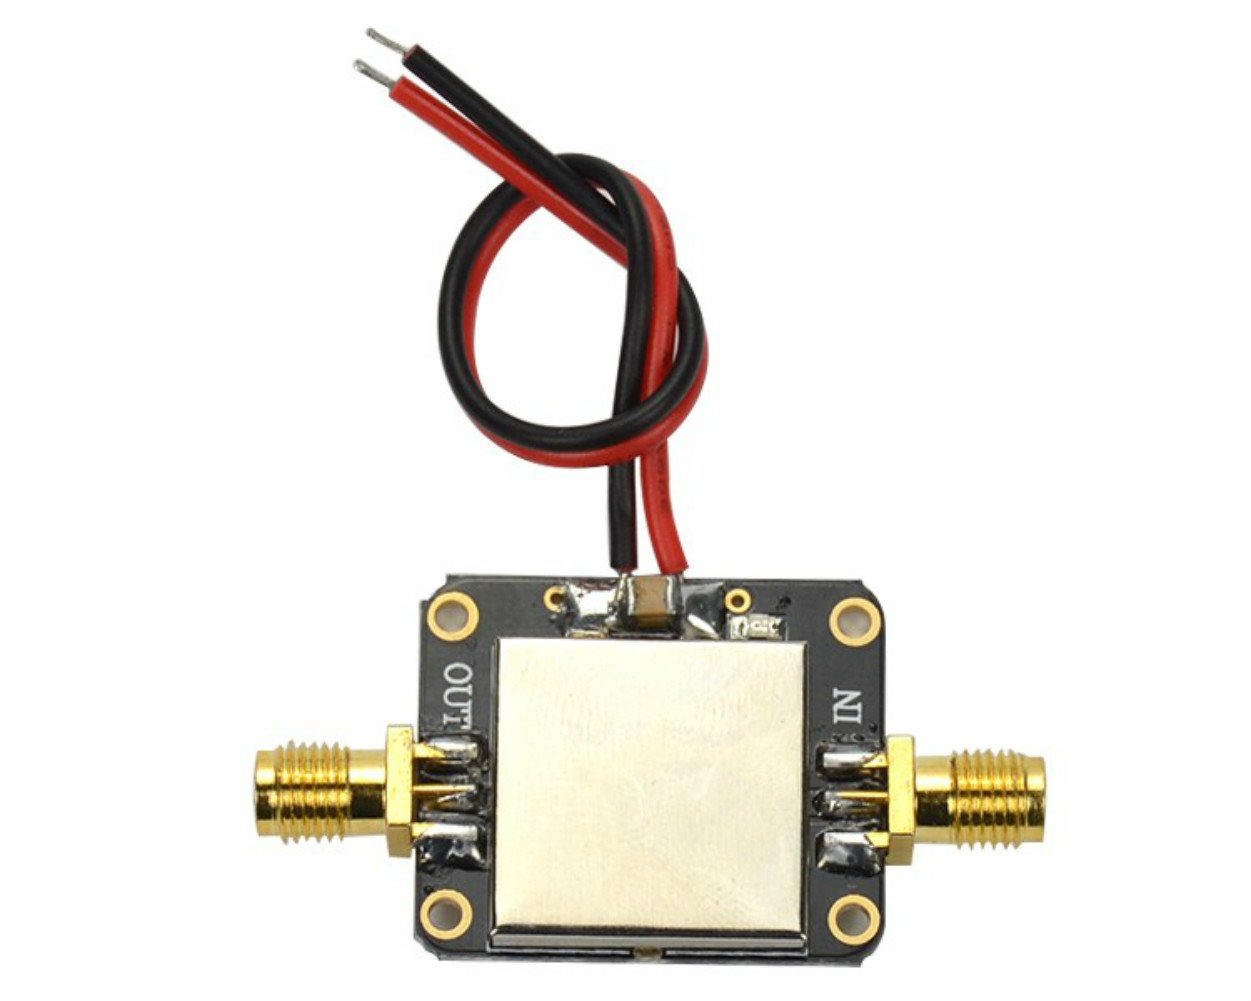 AOSHIKE DC 12V 0.01-2000MHz 2GHz LNA Broadband RF Low Noise Amplifier Module VHF/UHF Gain 32dB AMP board